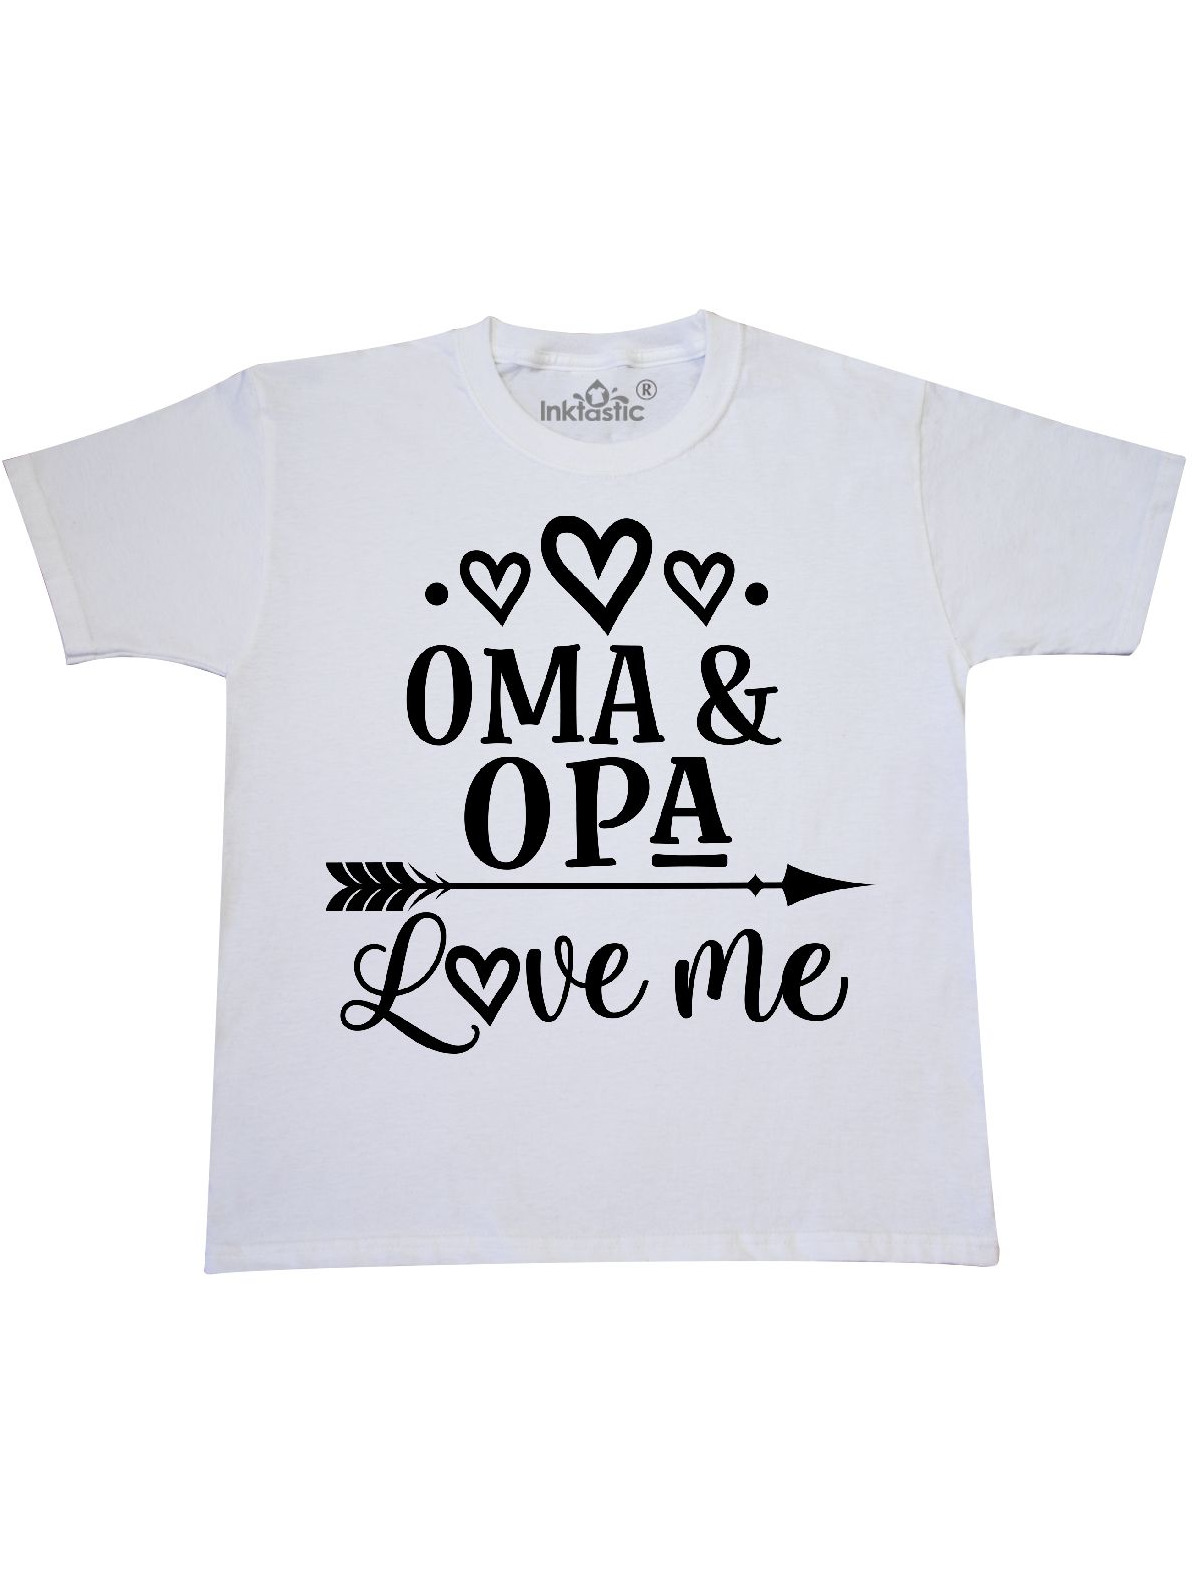 My Oma Opa Love Me Grandkids Youth T-Shirt